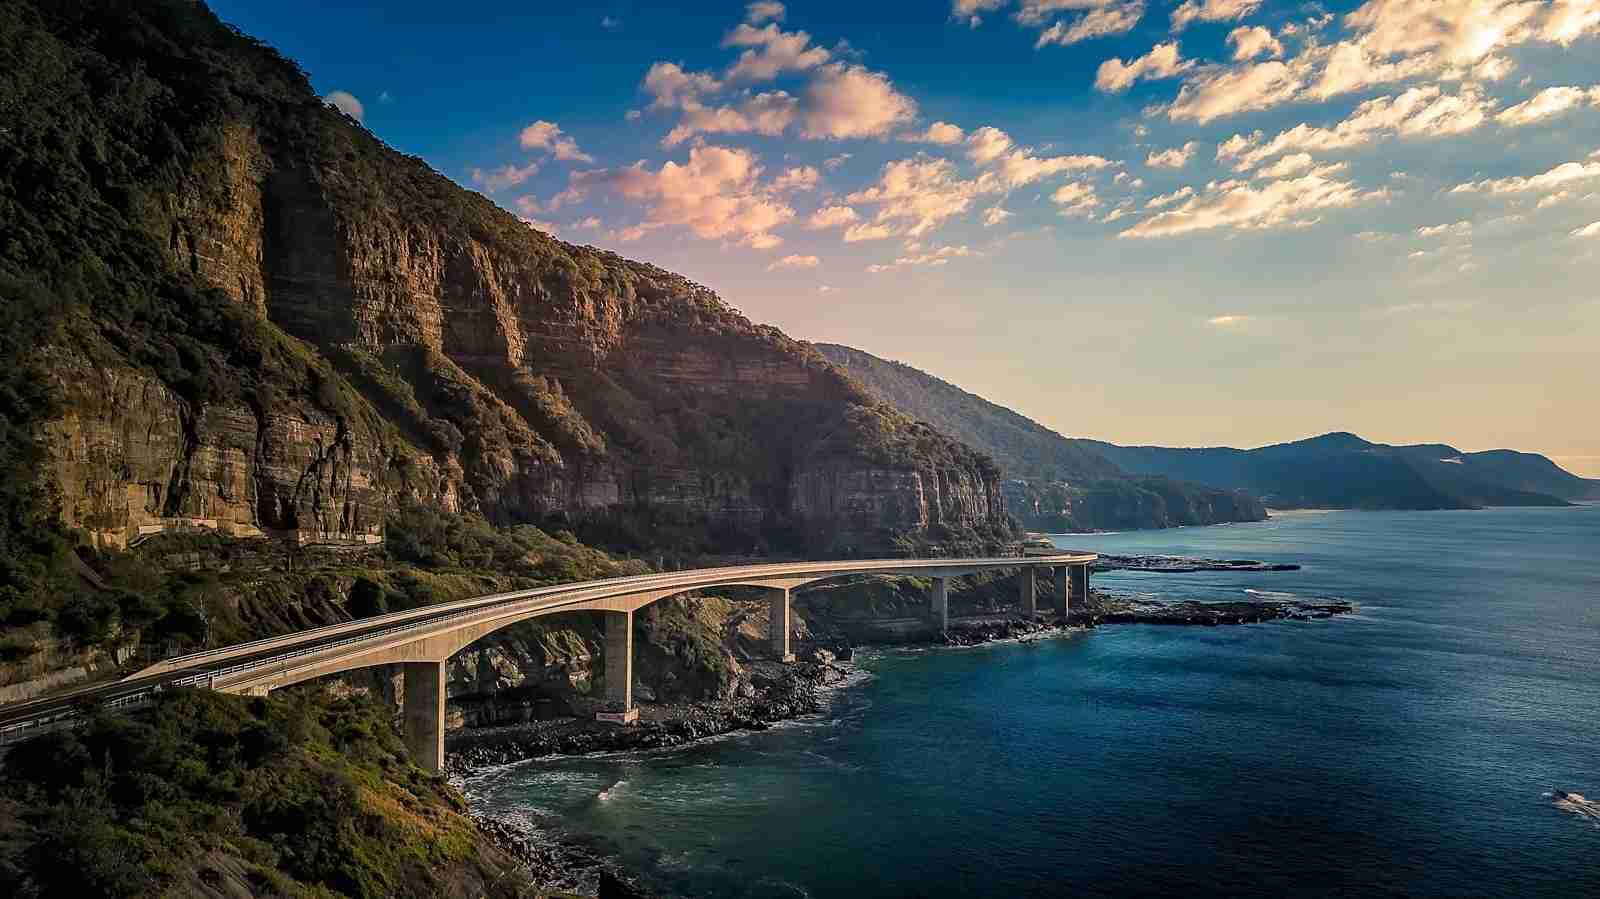 Sea Cliff Bridge in New South Wales. (Photo by alexroch/Shutterstock)